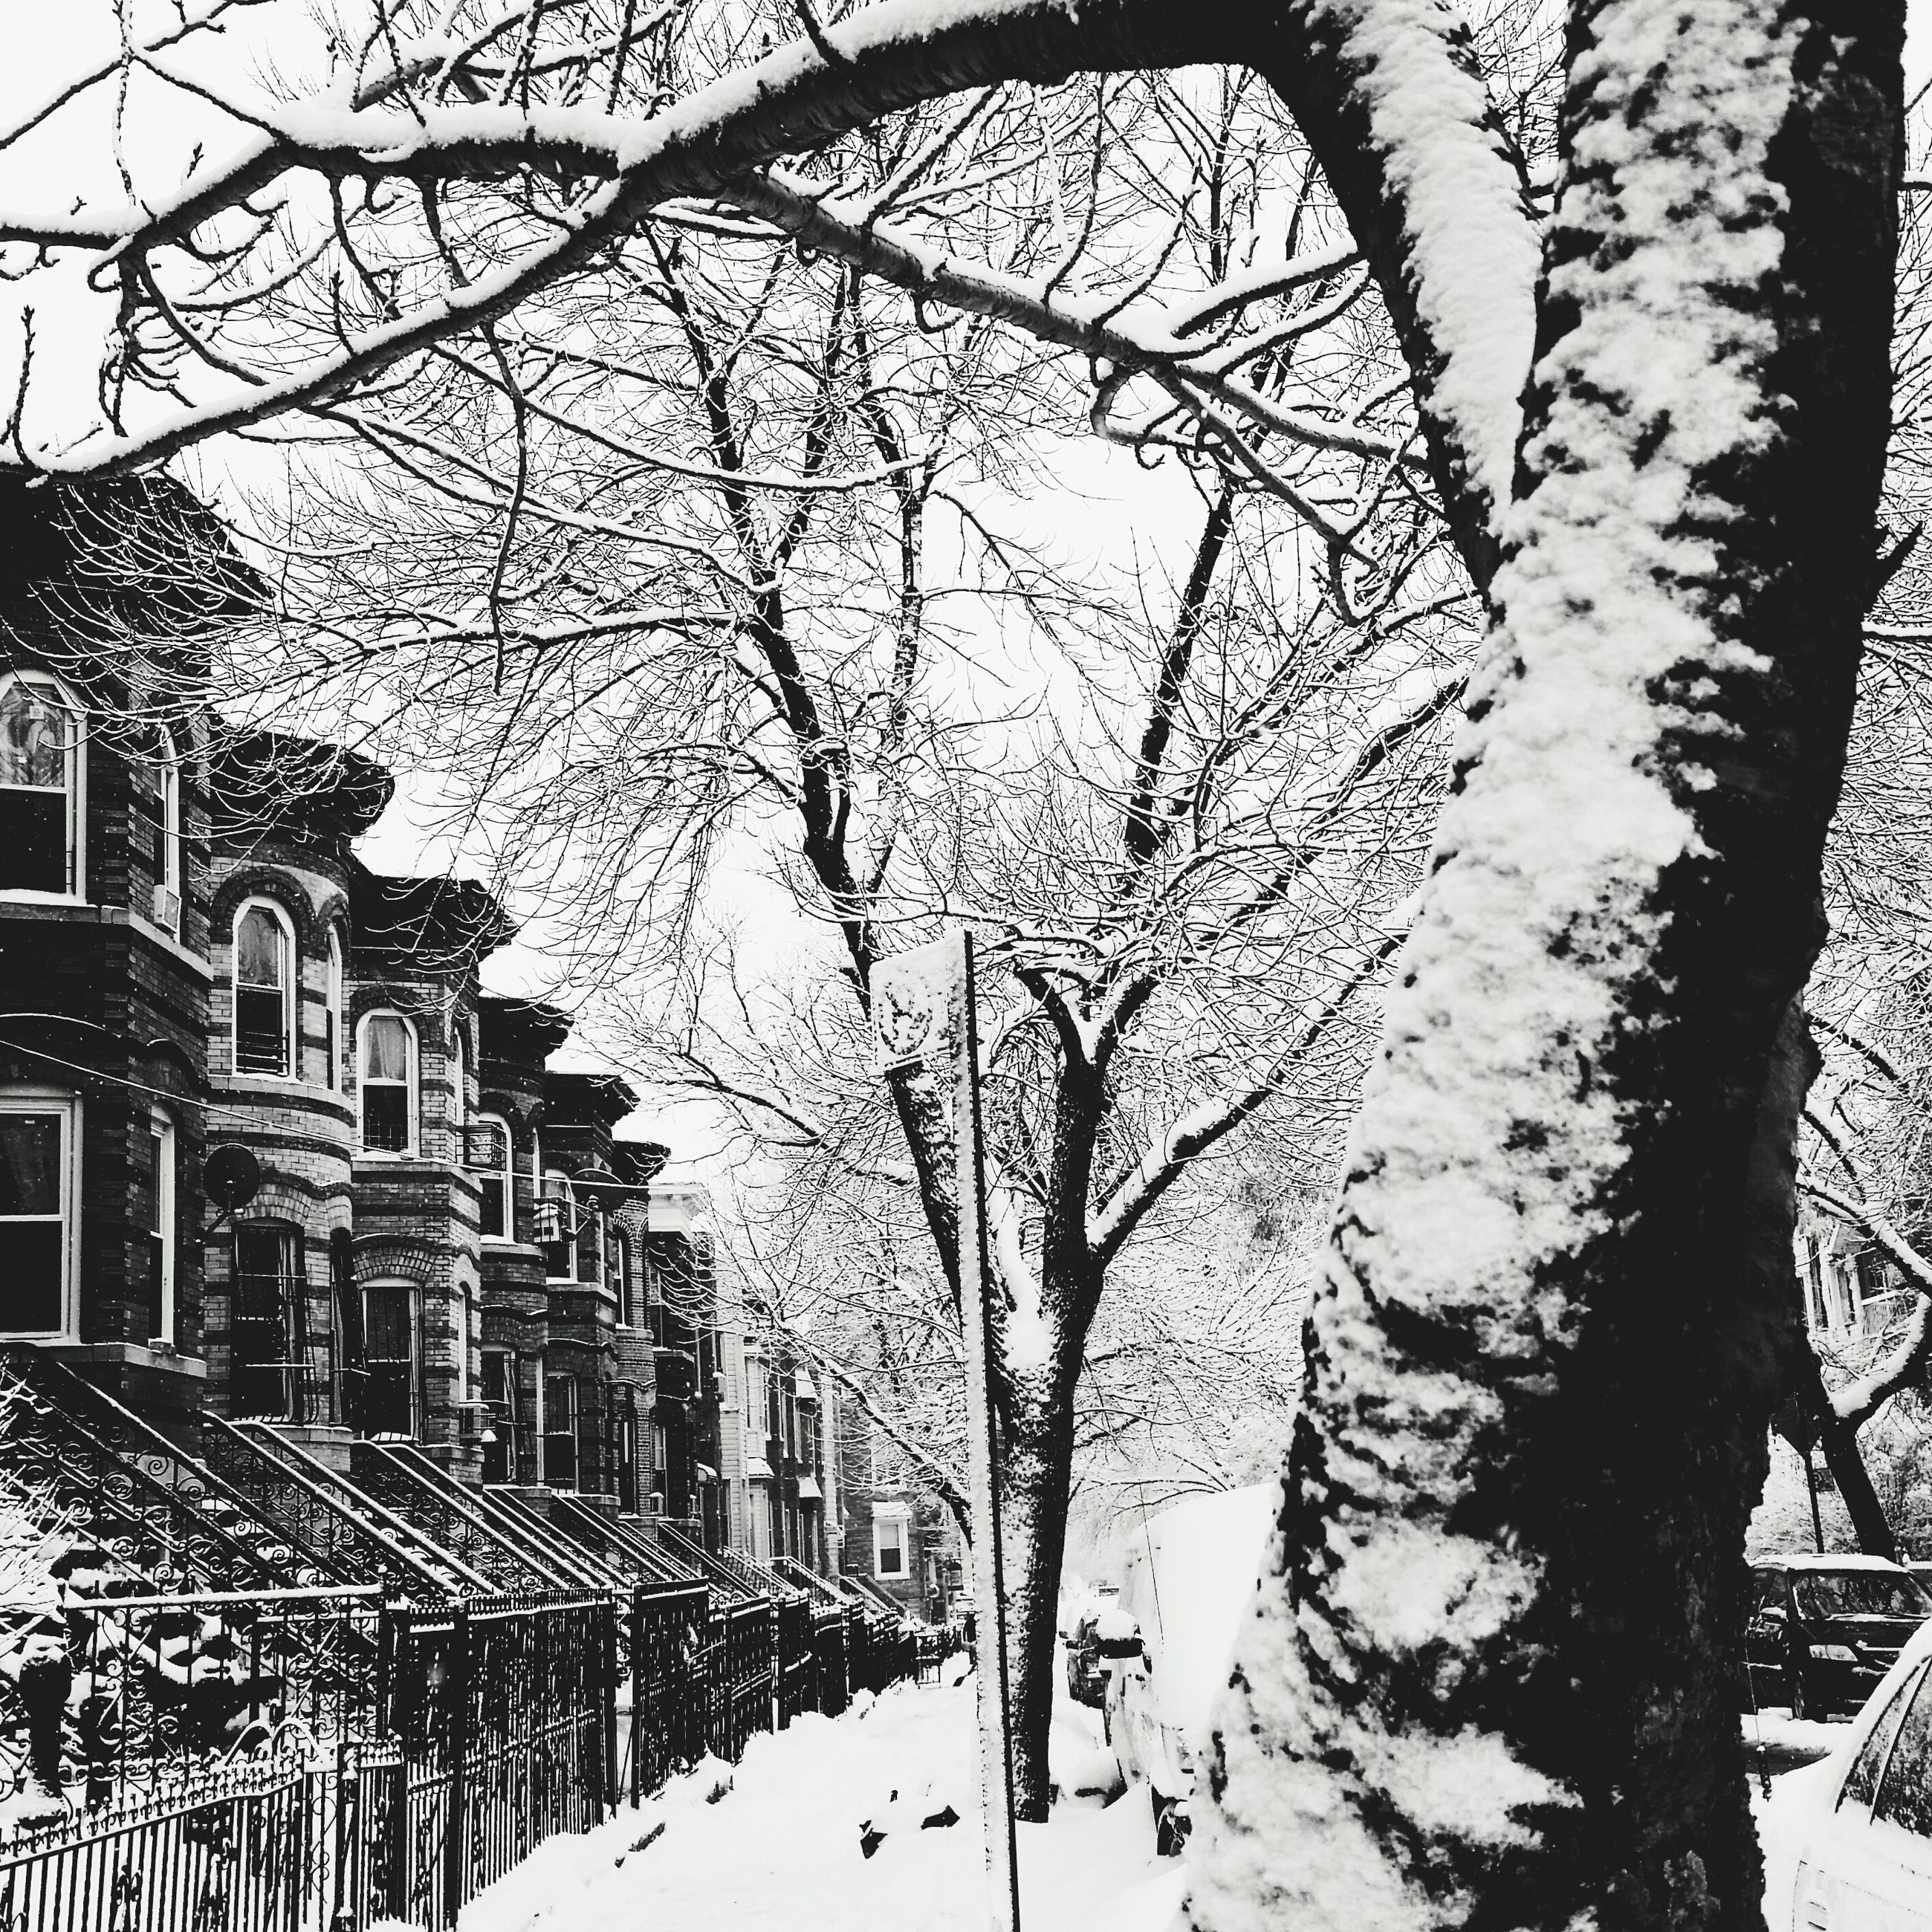 snow, winter, cold temperature, building exterior, architecture, built structure, bare tree, season, tree, weather, city, branch, covering, sky, building, residential structure, day, residential building, outdoors, street